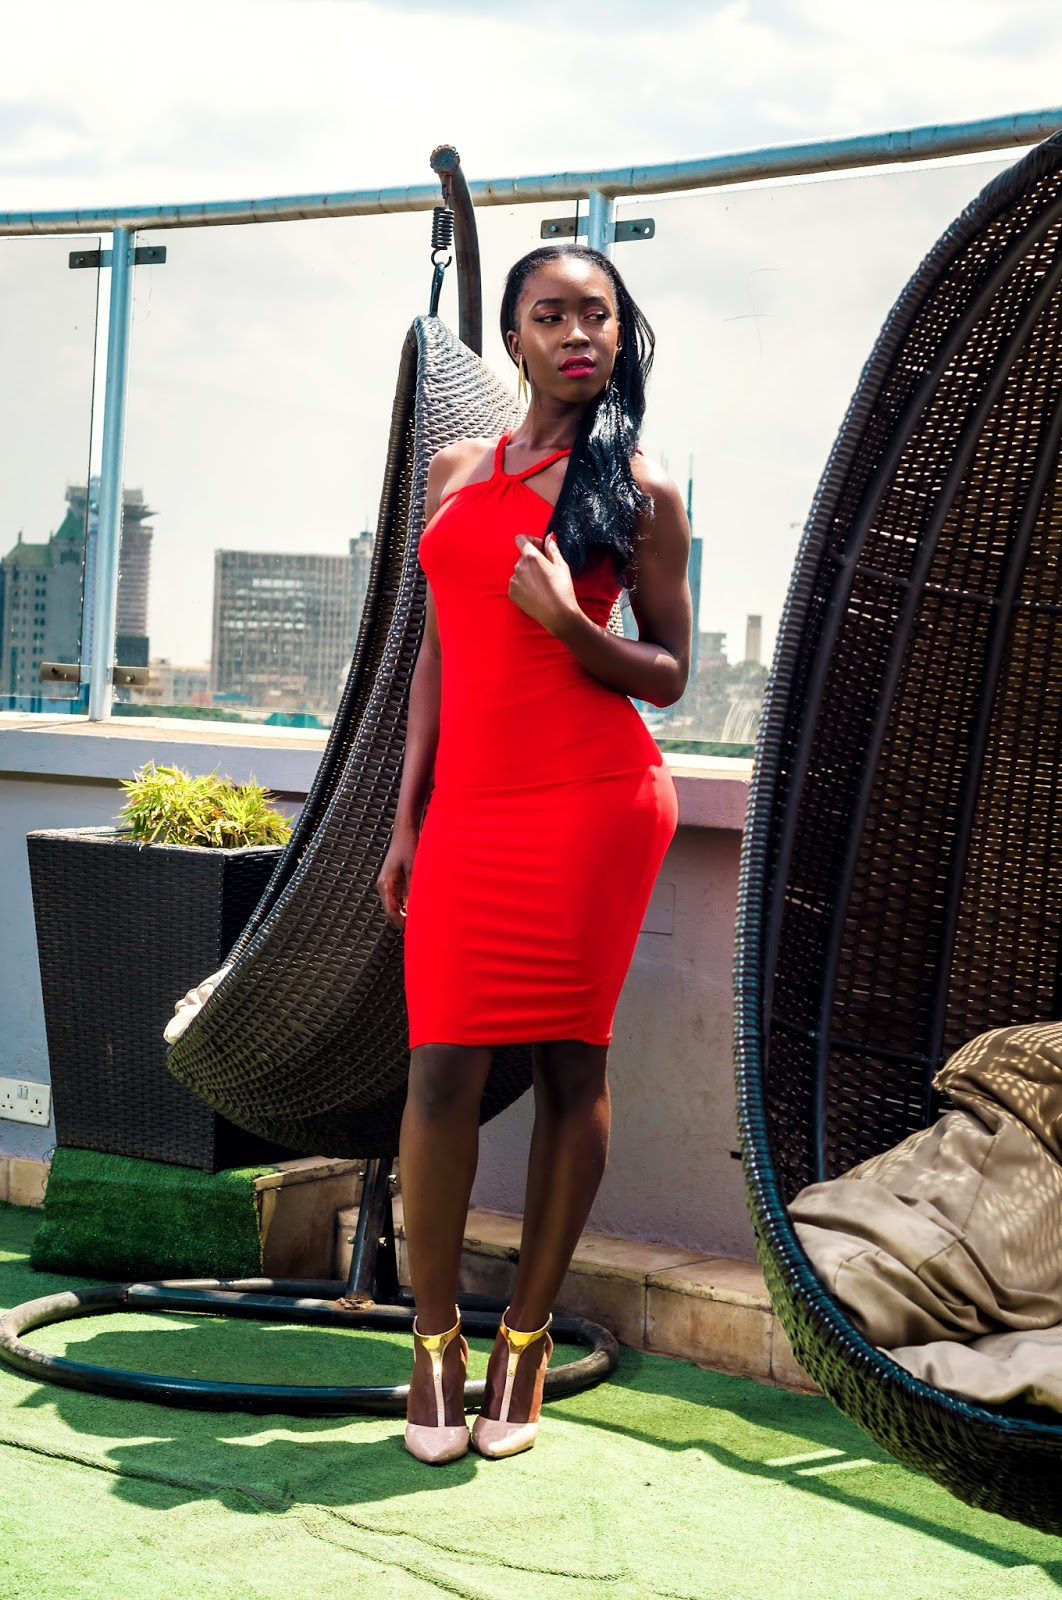 bodycon dress, elegant red dress, red dress, valentines outfit ideas, what to wear for valentines, how to wear a bodycon dress, style with Ezil, Kenyan fashion Blogger, Ezil